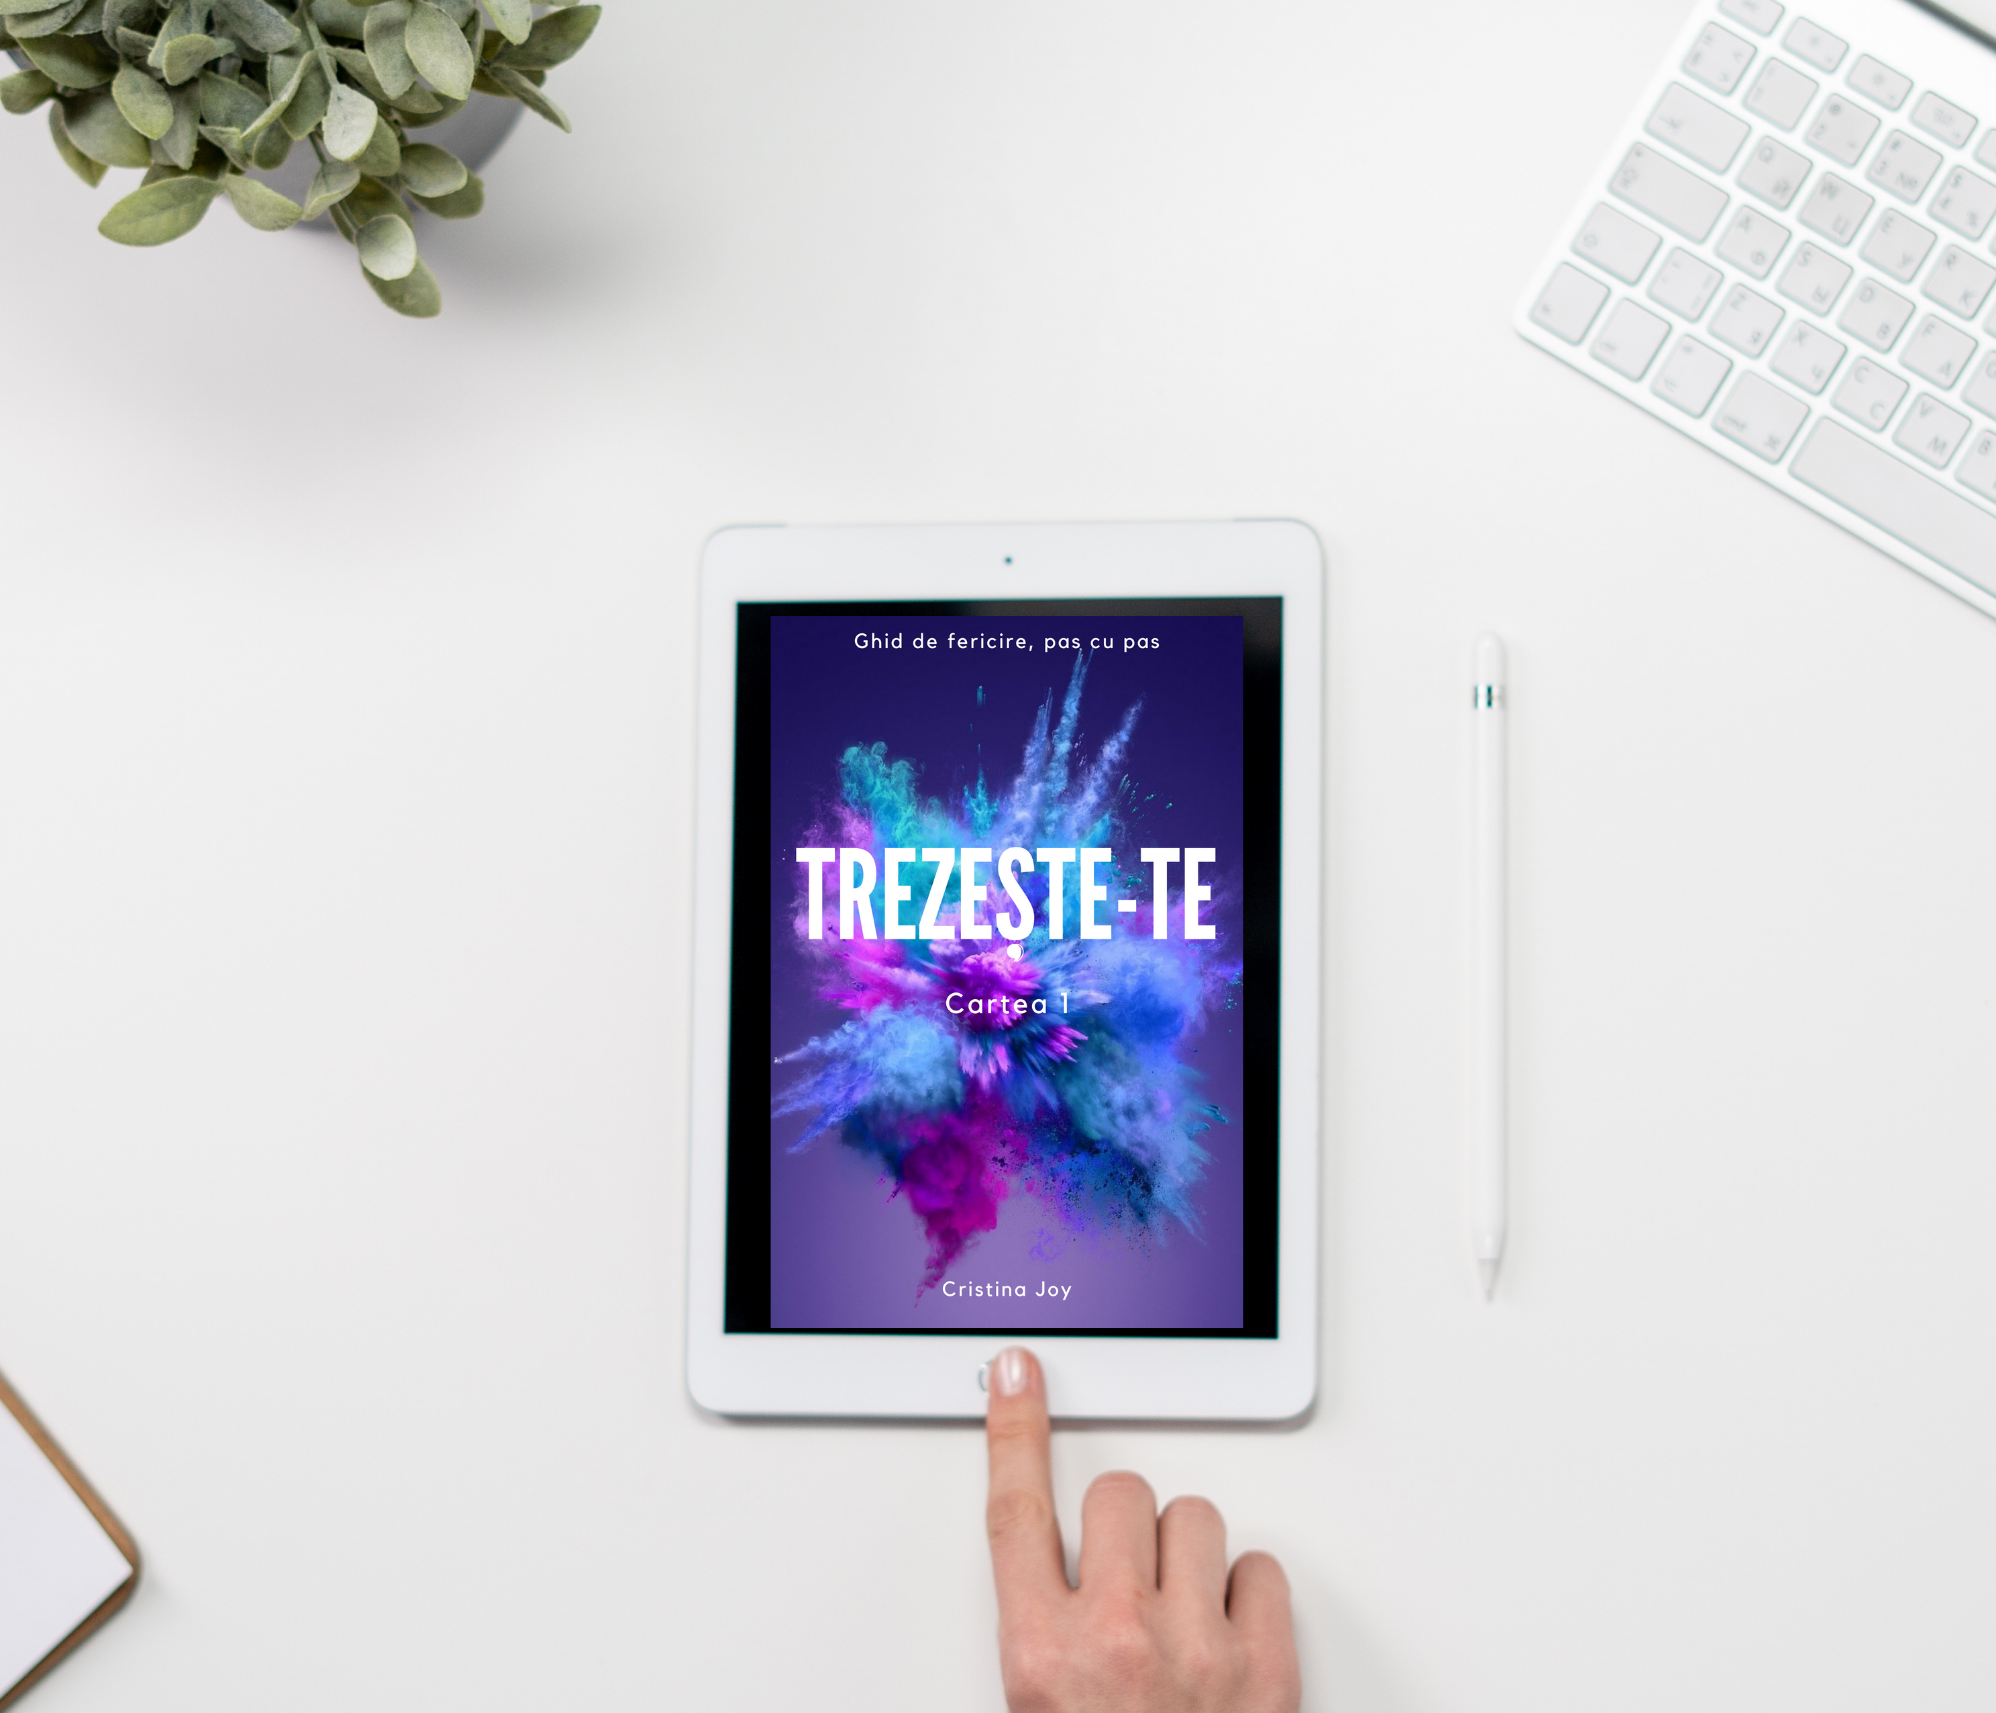 Trezeste-te Ebook